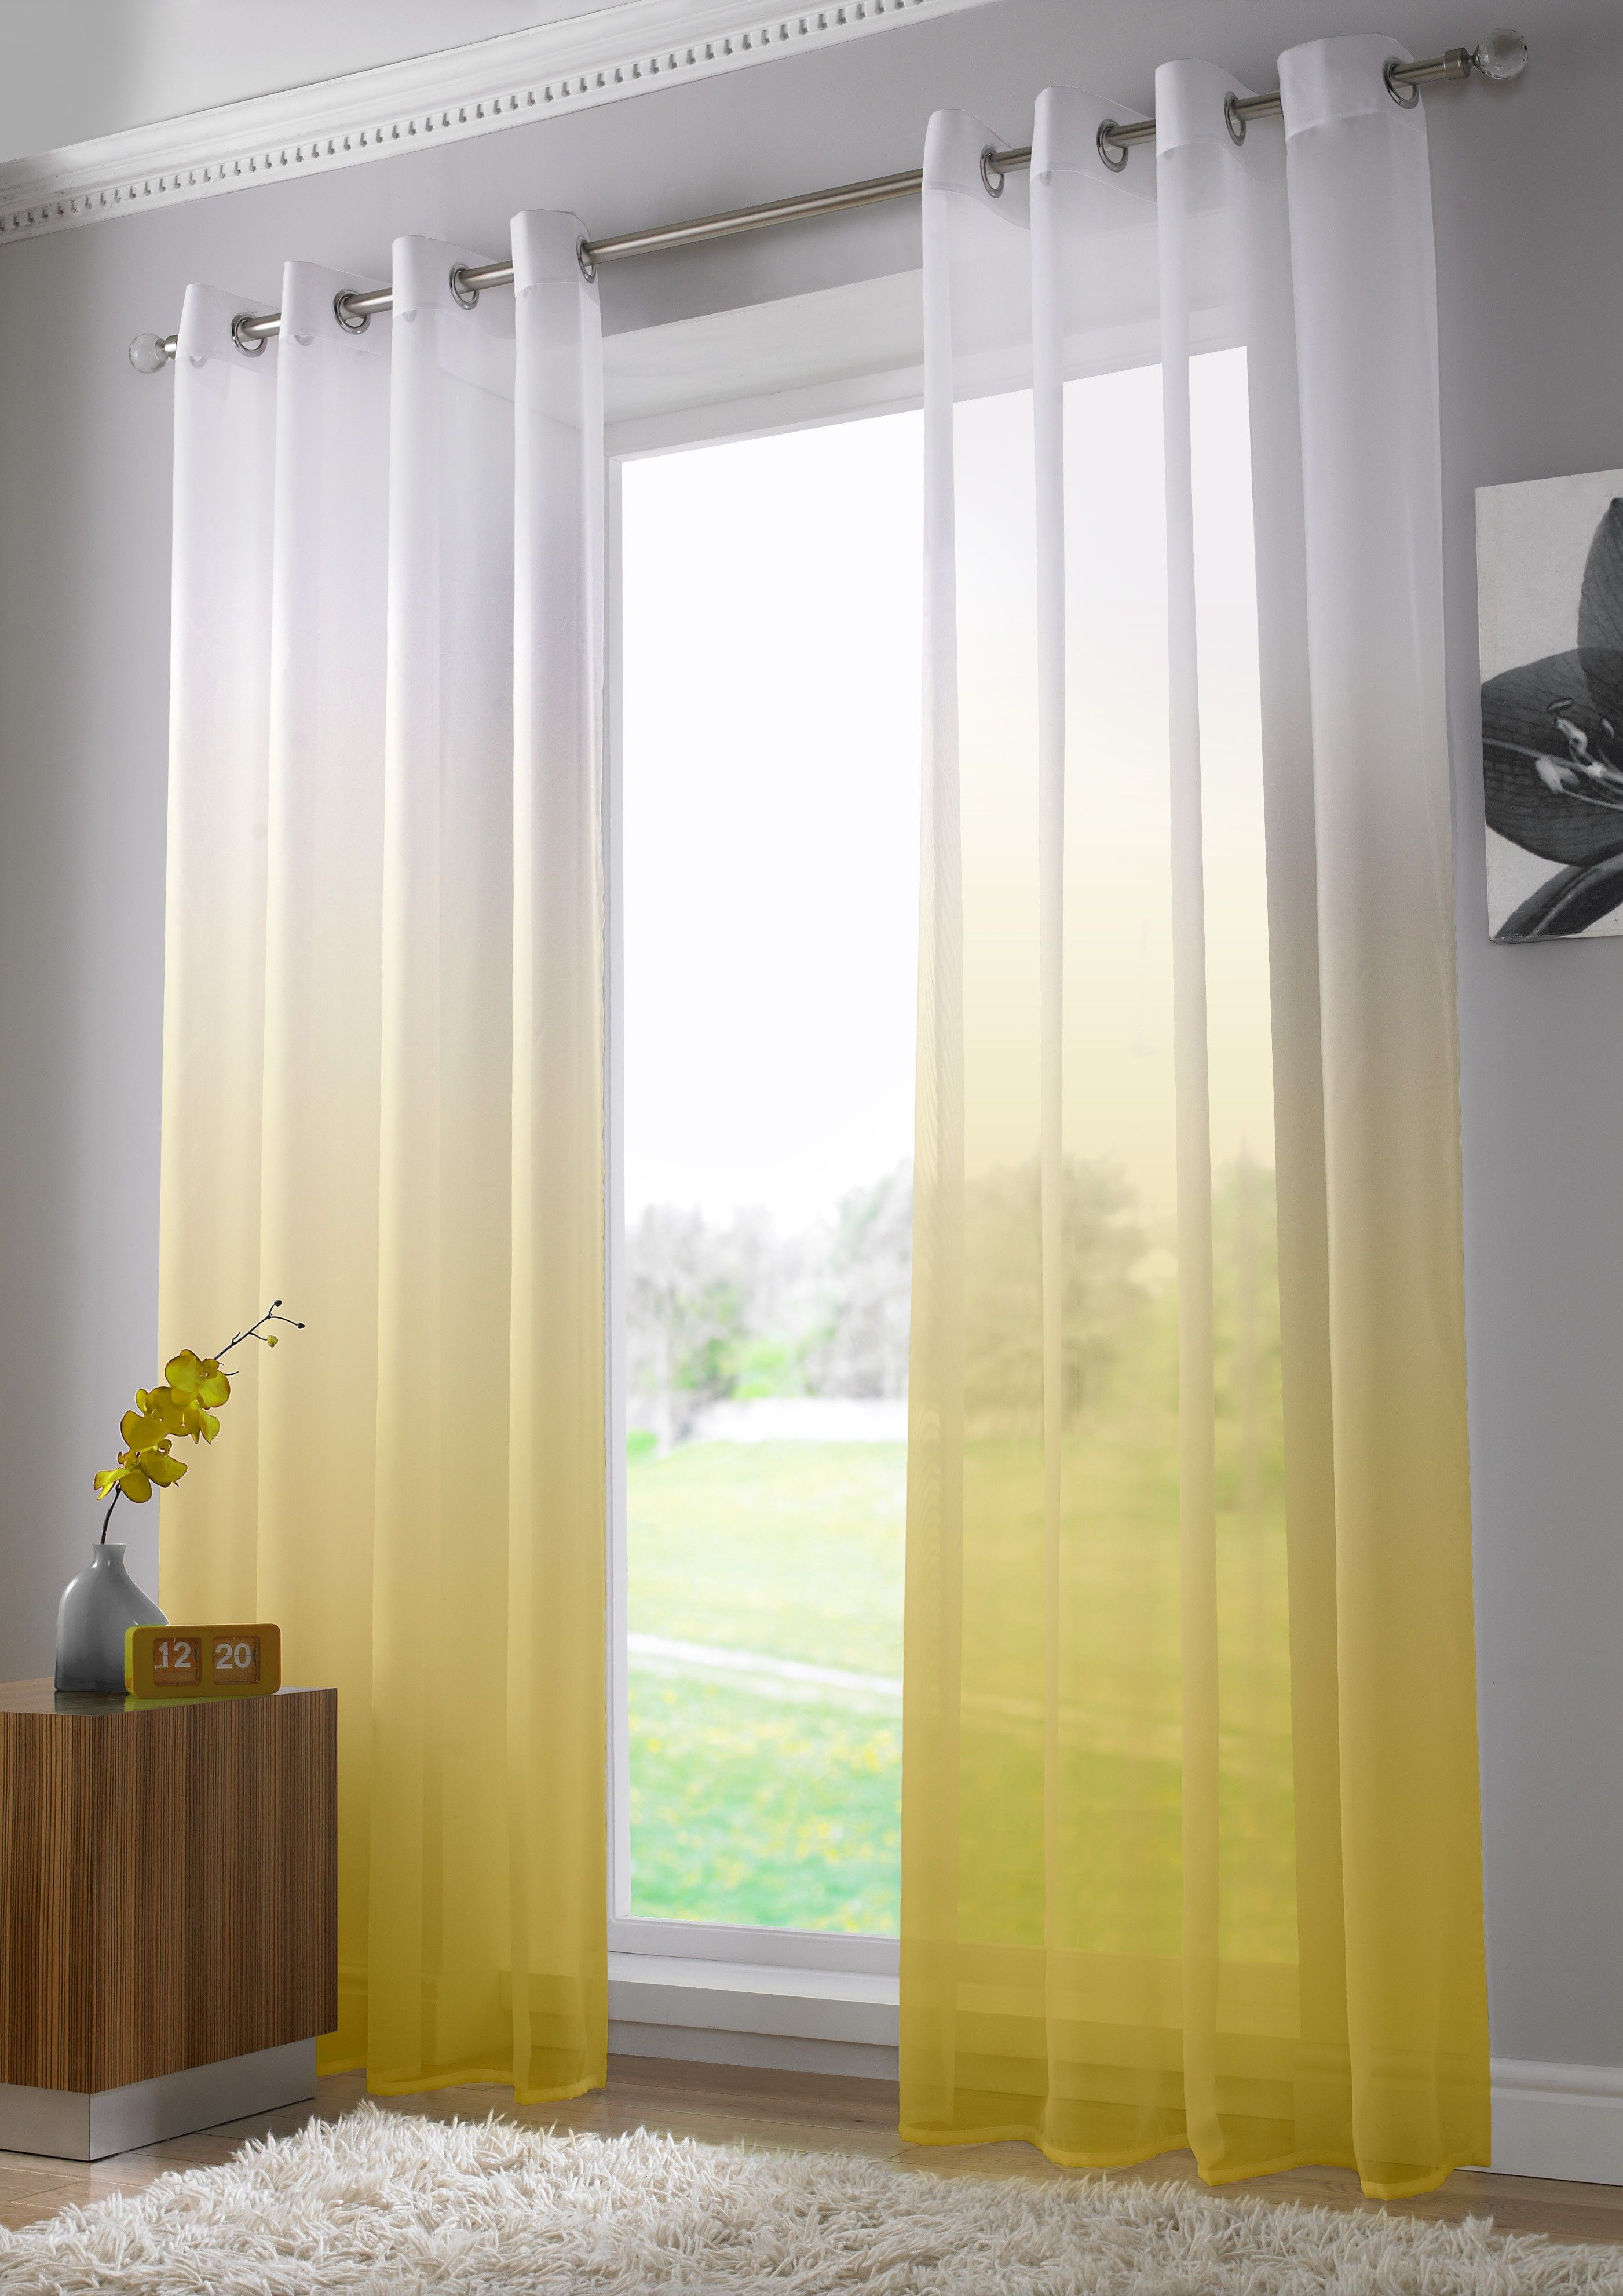 This Modern And Bright Voile Panel